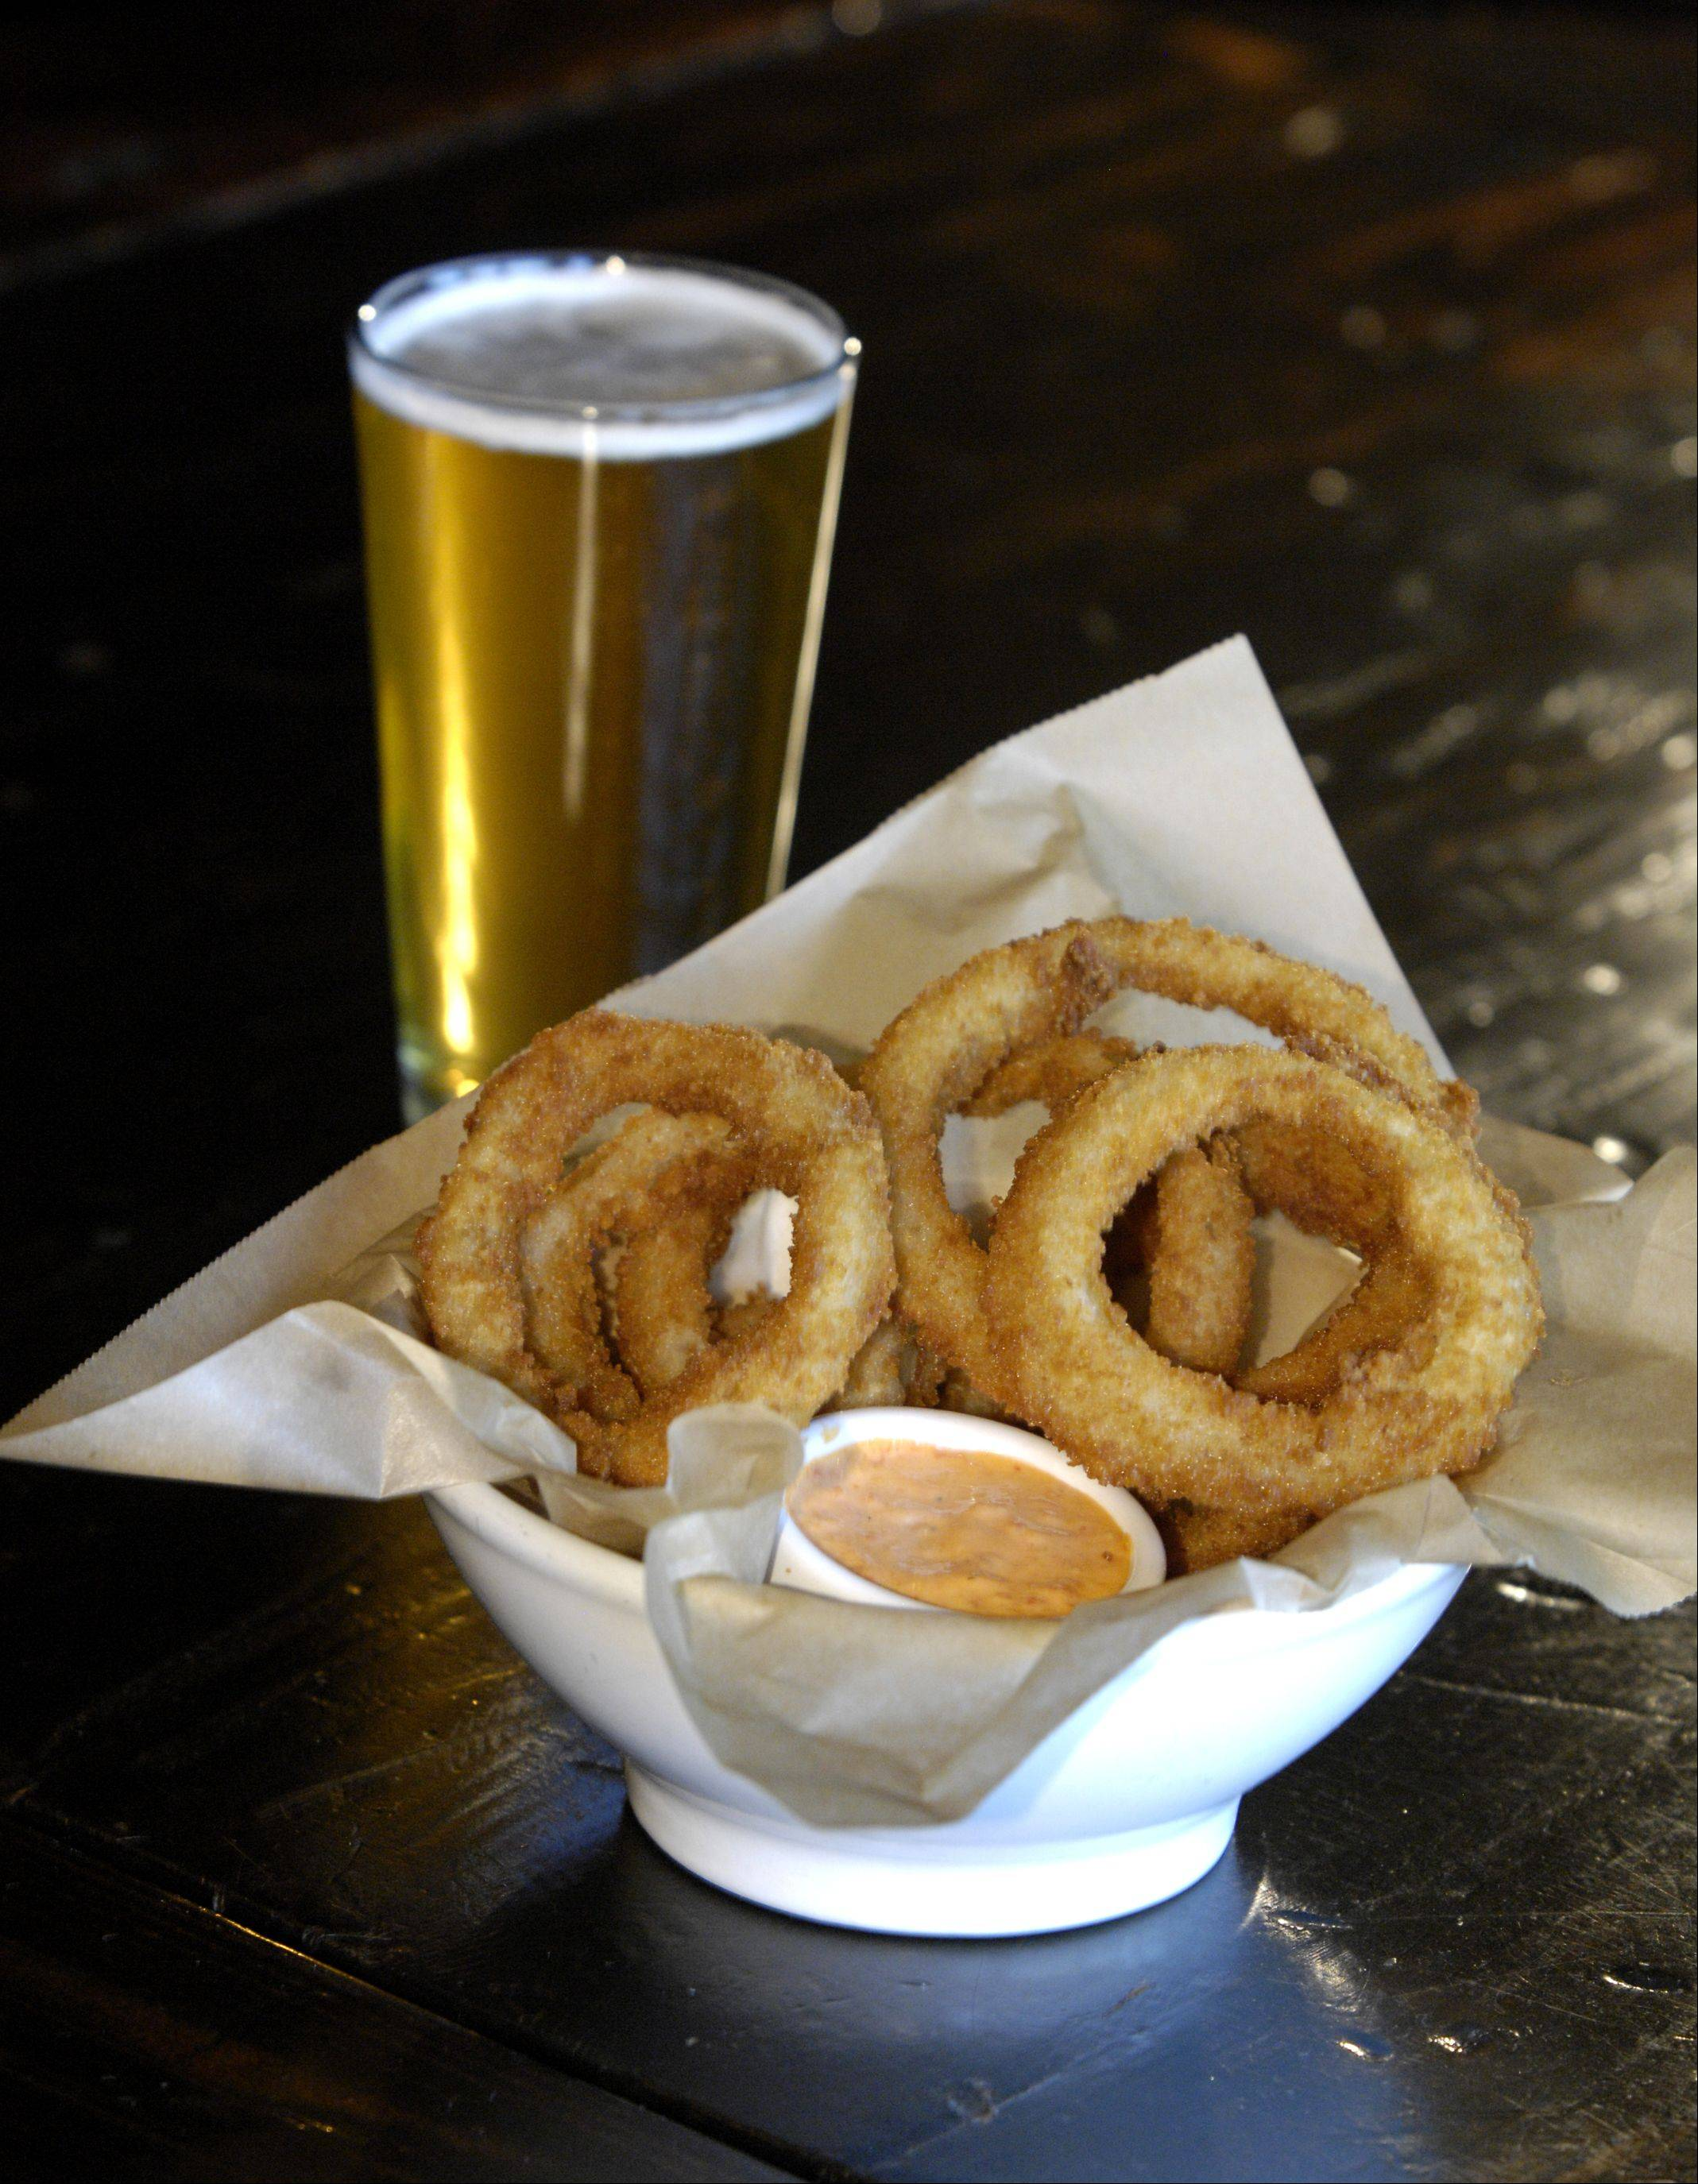 Goose Island Summertime is the beer of choice for Rockit Burger Bar's beer-battered onion rings.